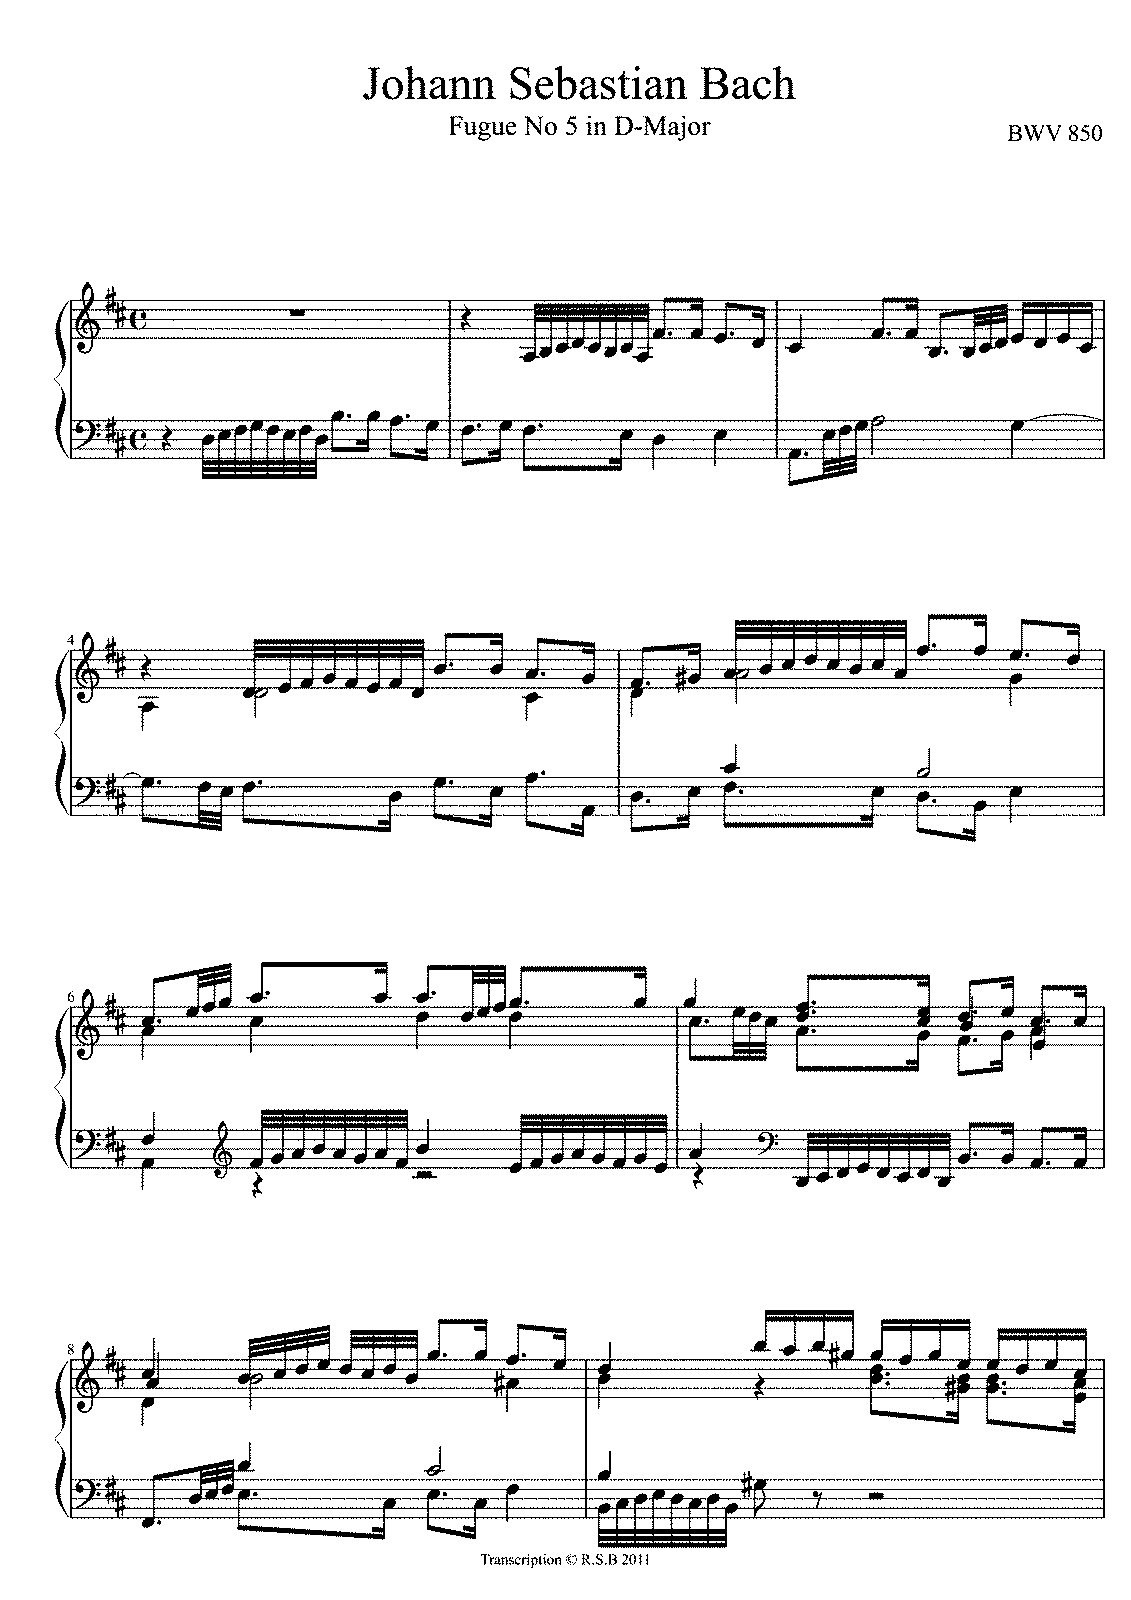 Bach prelude in d major pdf viewer